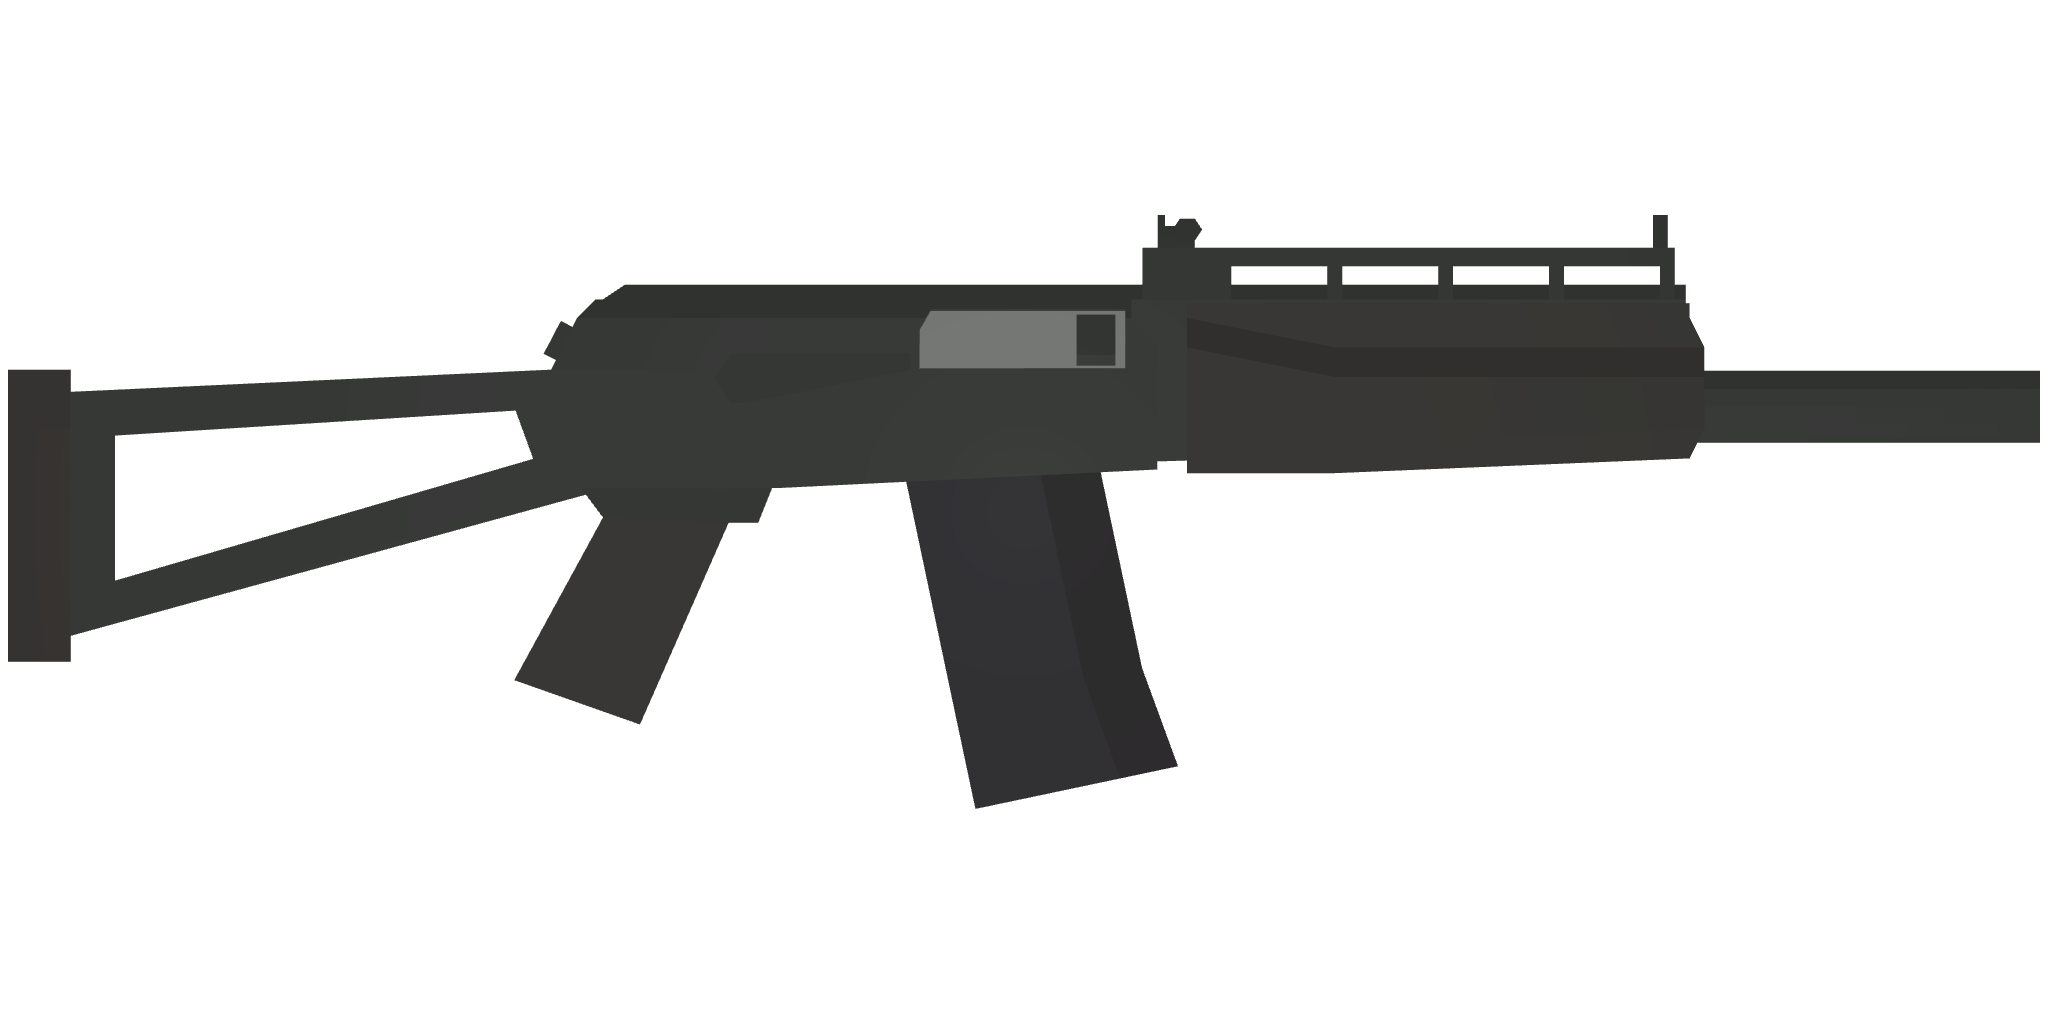 Unturned Uncreated Warfare Mods & All ID List + Attachments - Russian Weapons - 540AB60